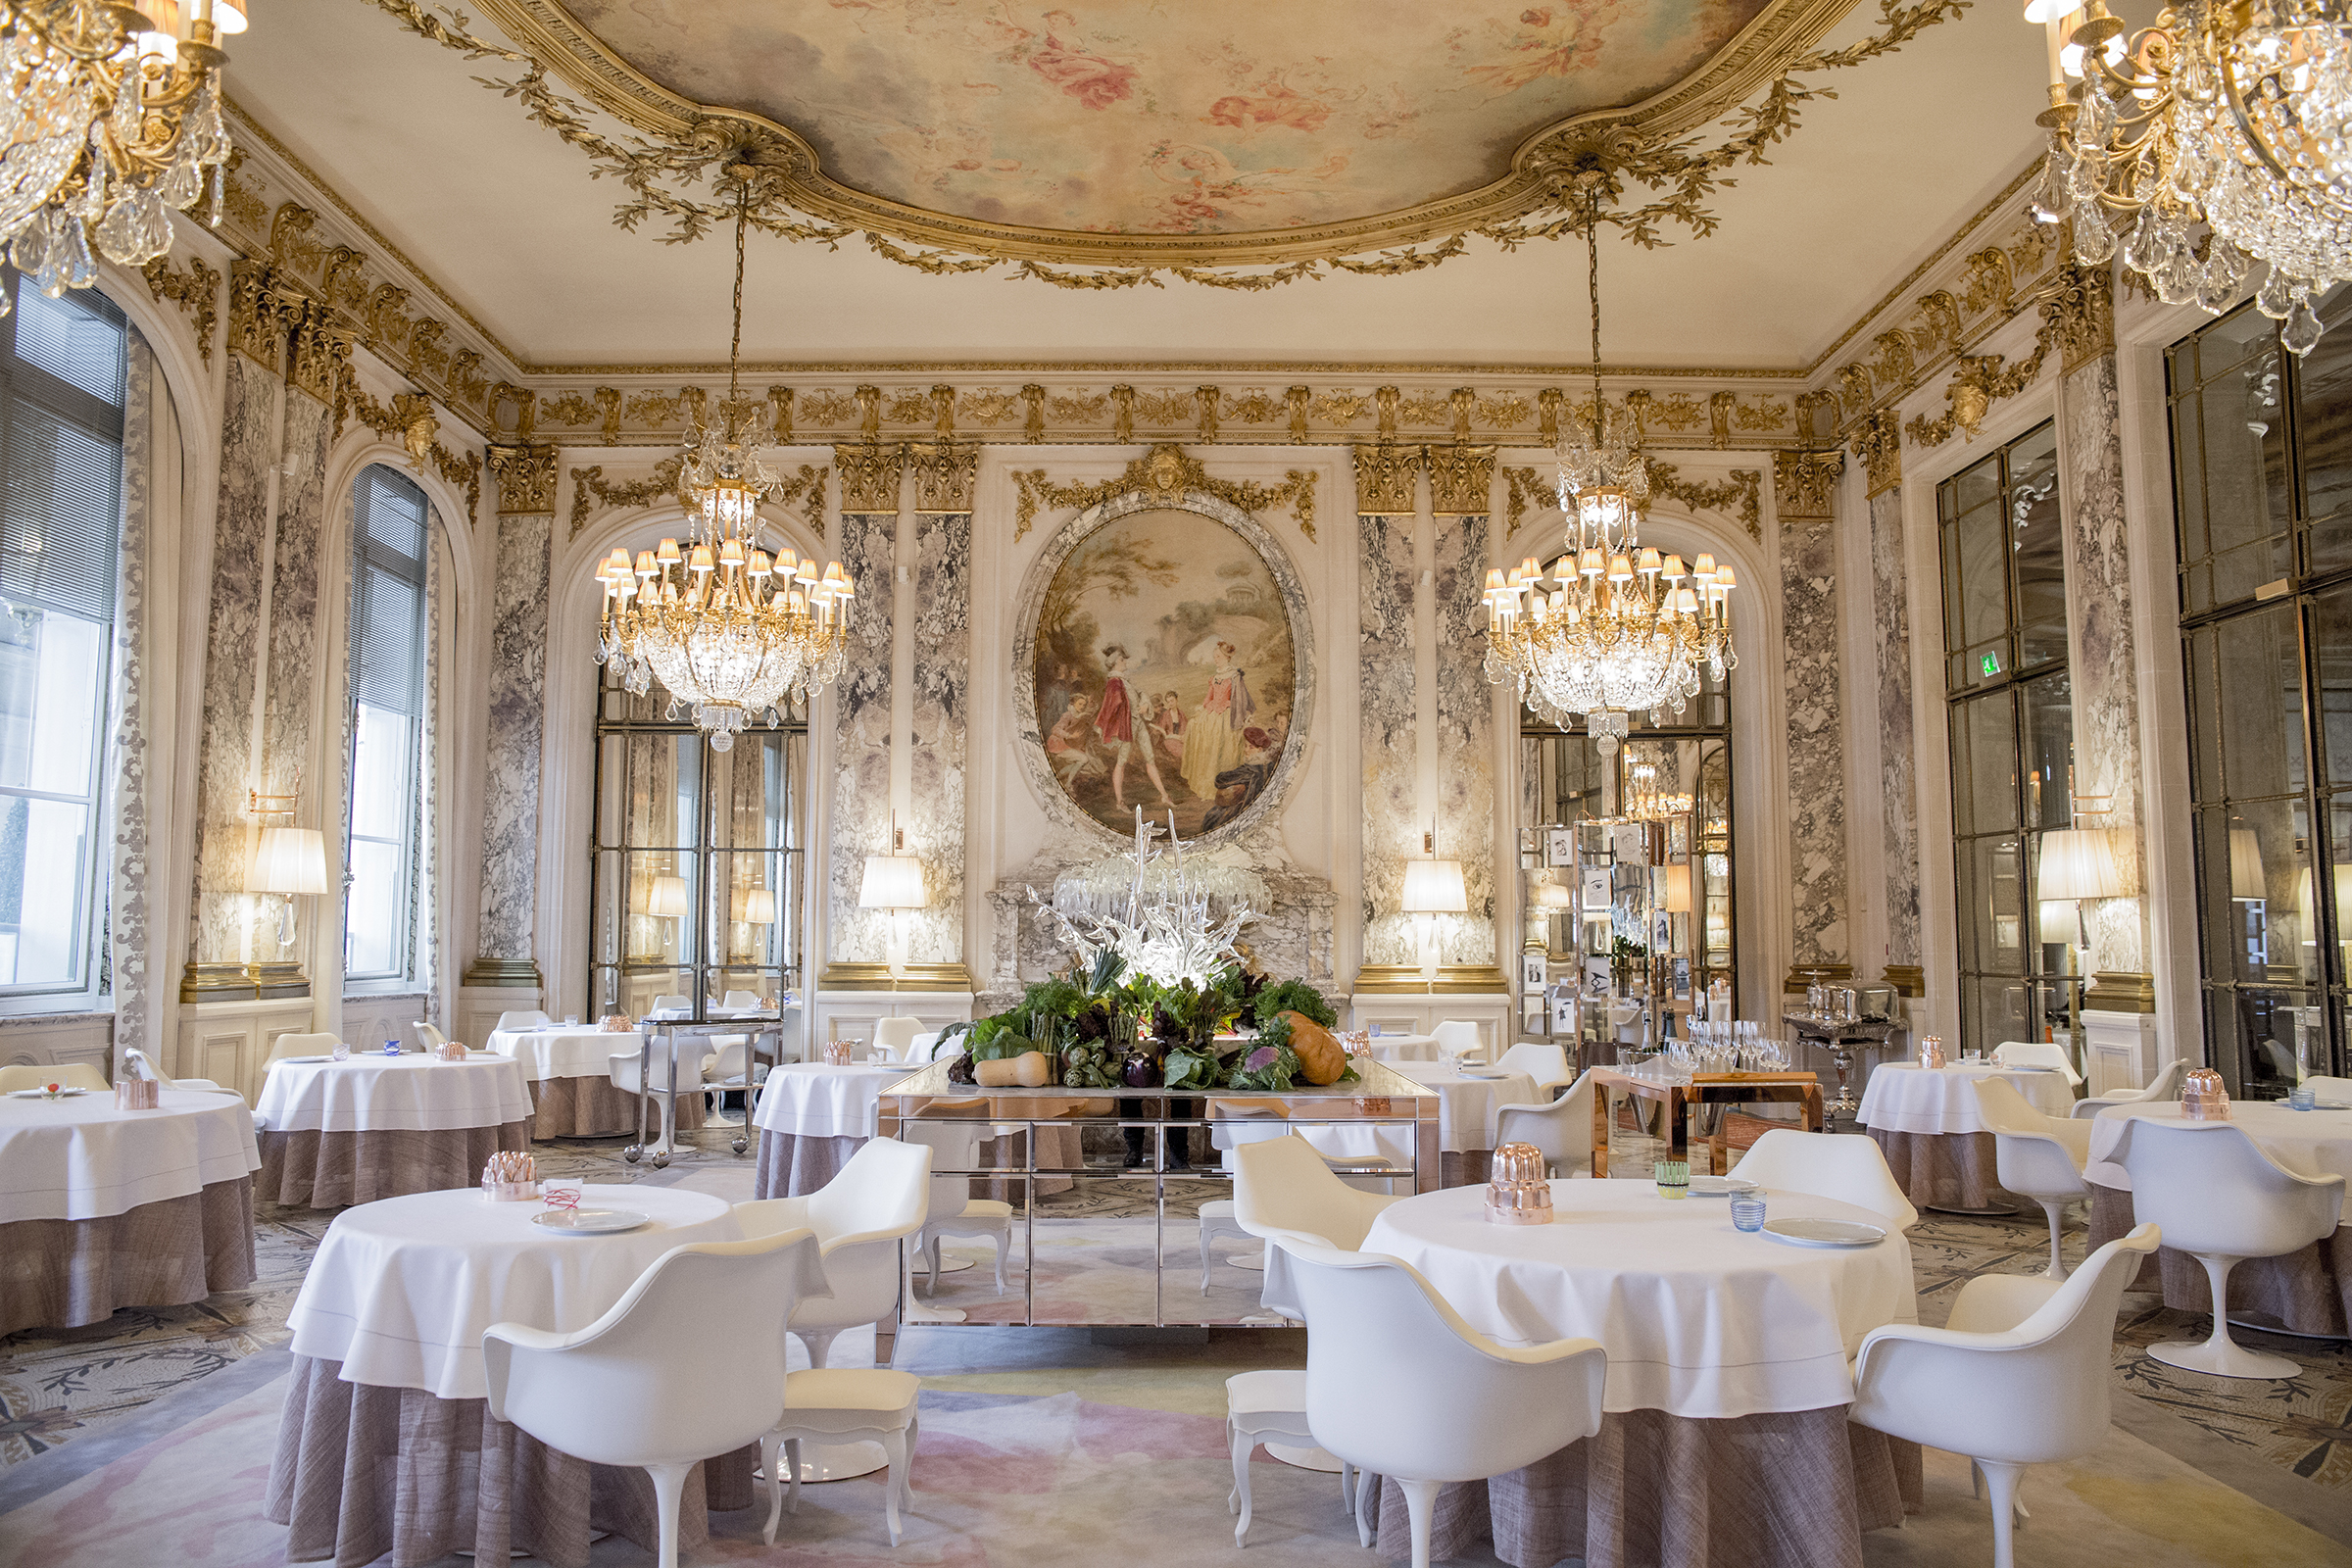 Restaurant Le Meurice Alain Ducasse Paris France 48 hours in Paris